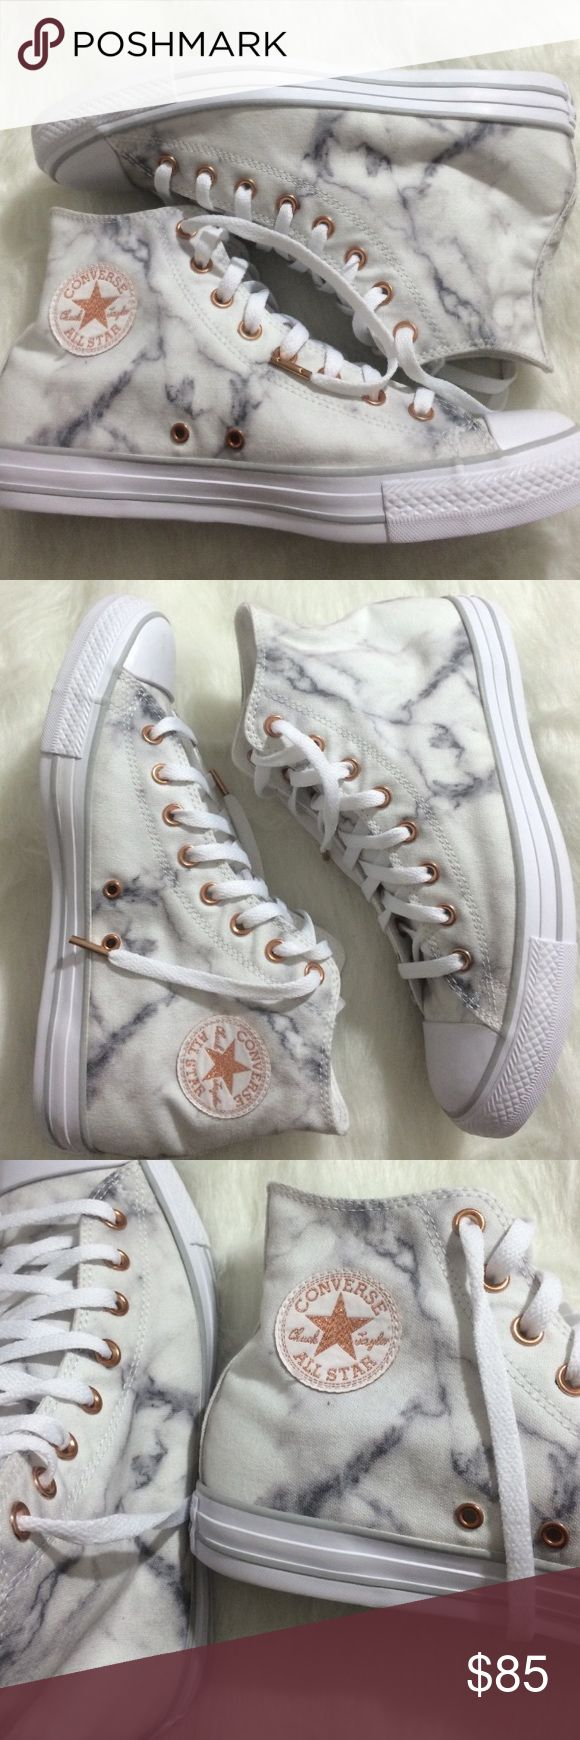 Converse marble chuck Taylor Nike id custom shoes Brand new without box. Women's size 11 Converse Shoes Sneakers